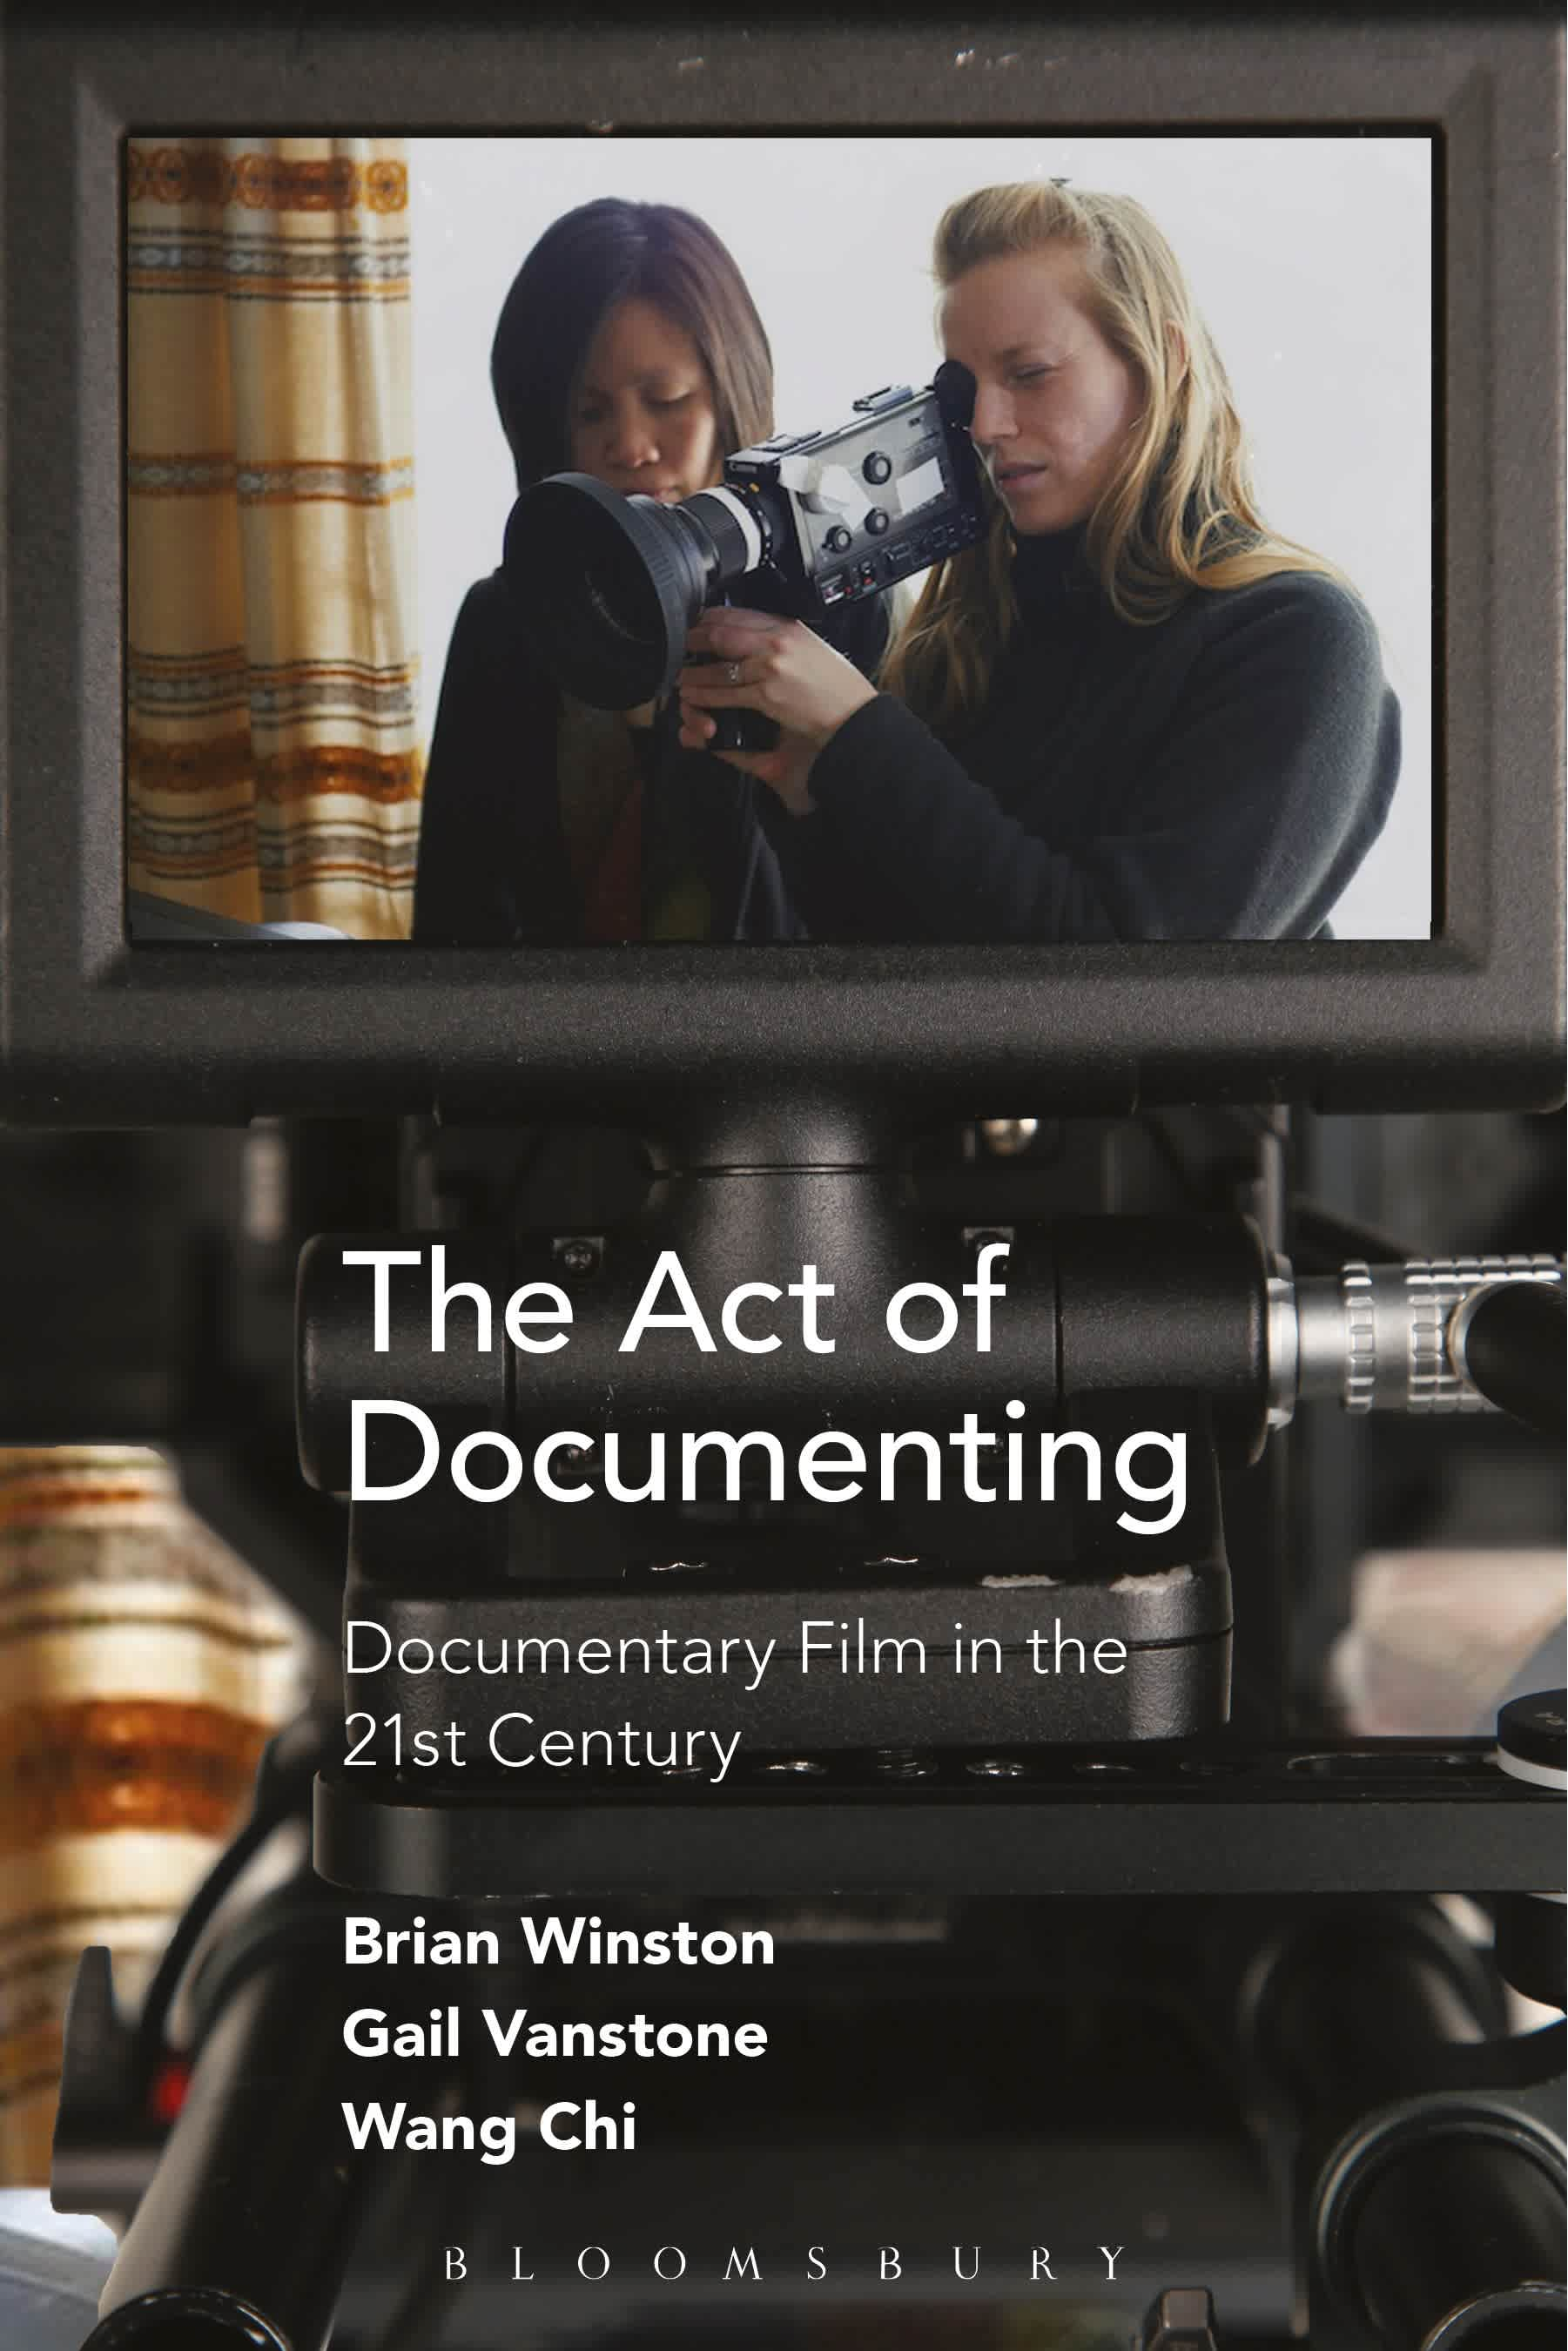 The Act of Documenting: Documentary Film in the 21st Century cover image